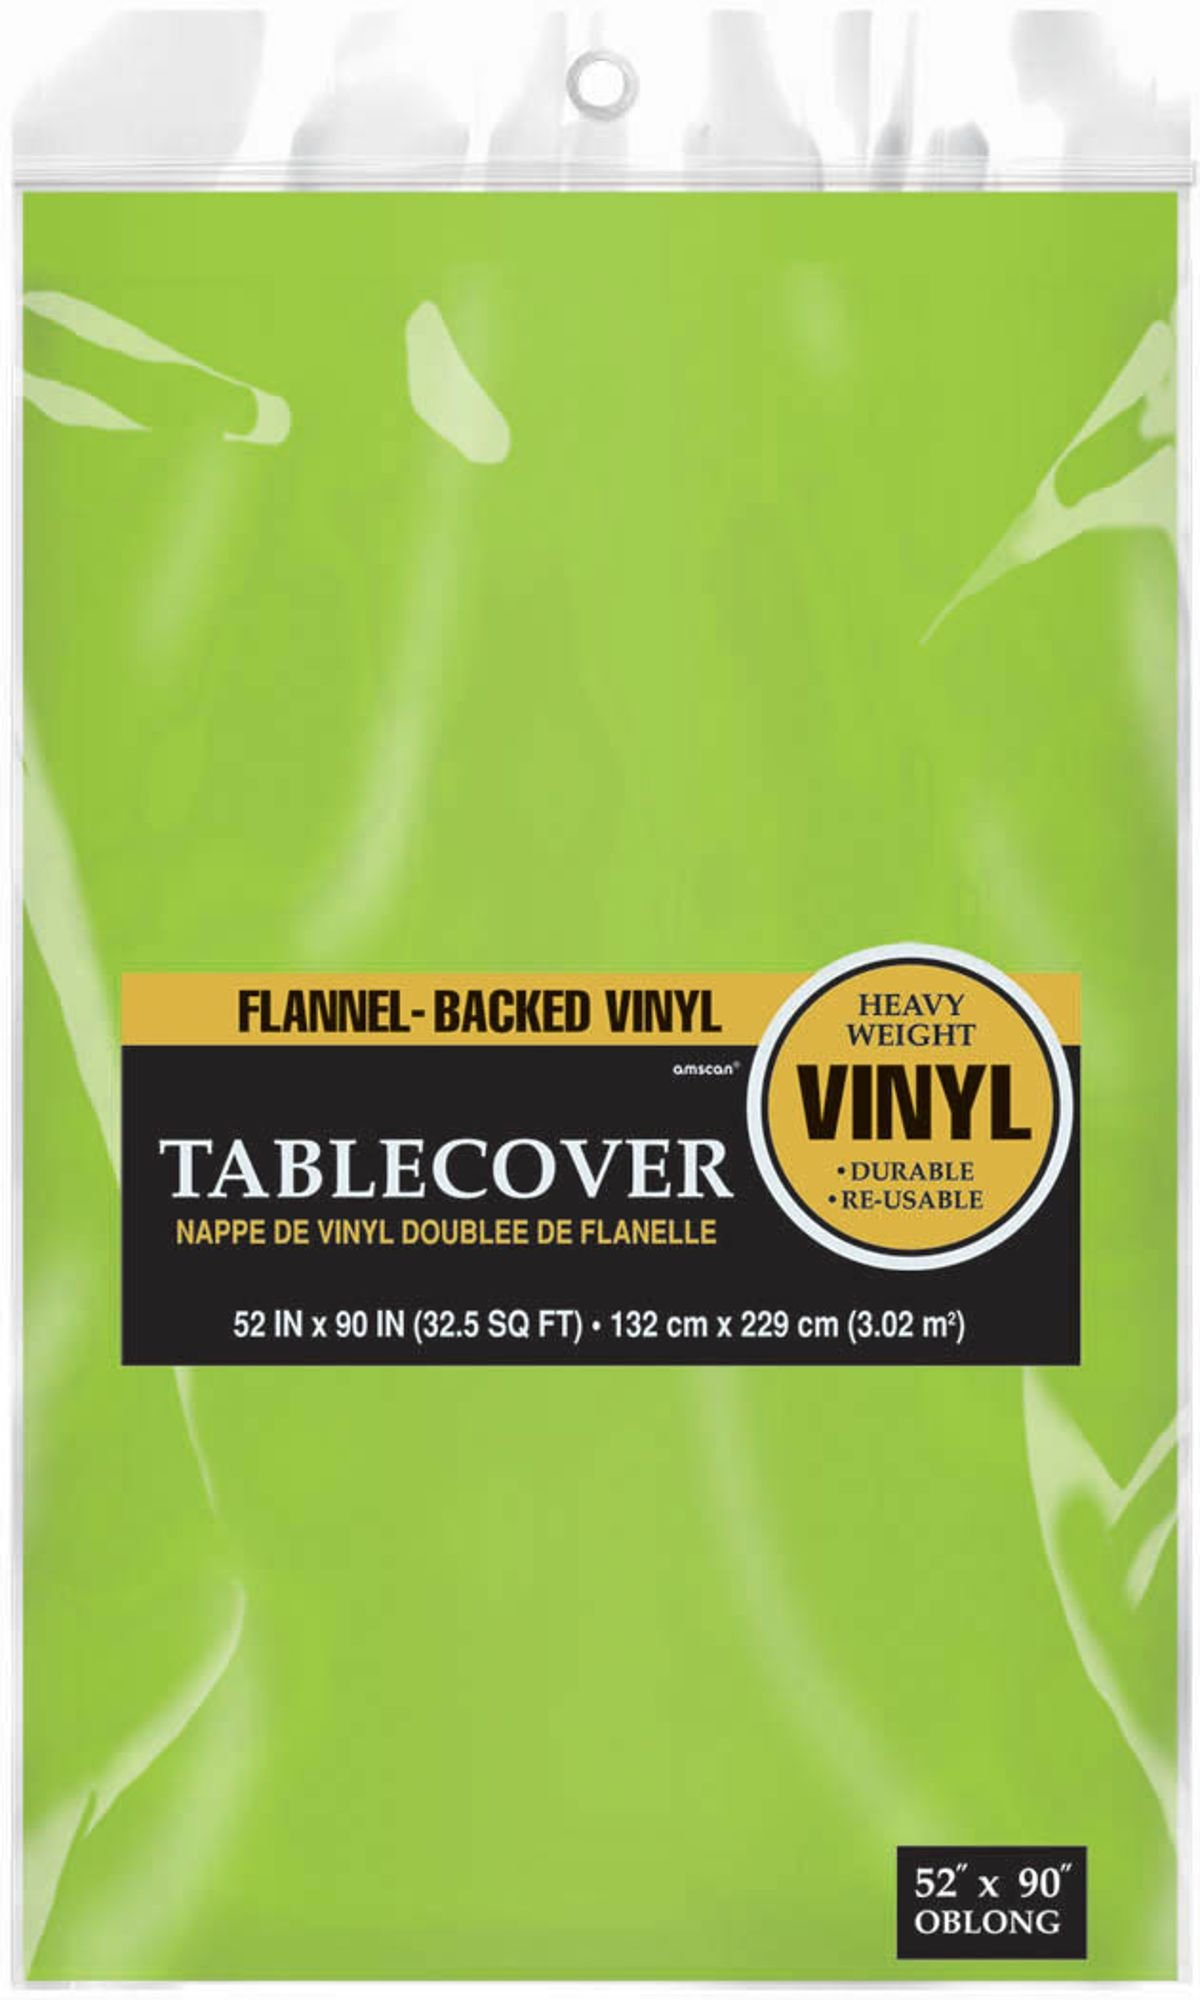 Durable Indoor / Outdoor Flannel Backed Vinyl Party Tablecover in Solid Color Tableware, Kiwi, Vinyl , 52'' x 90'' by Amscan